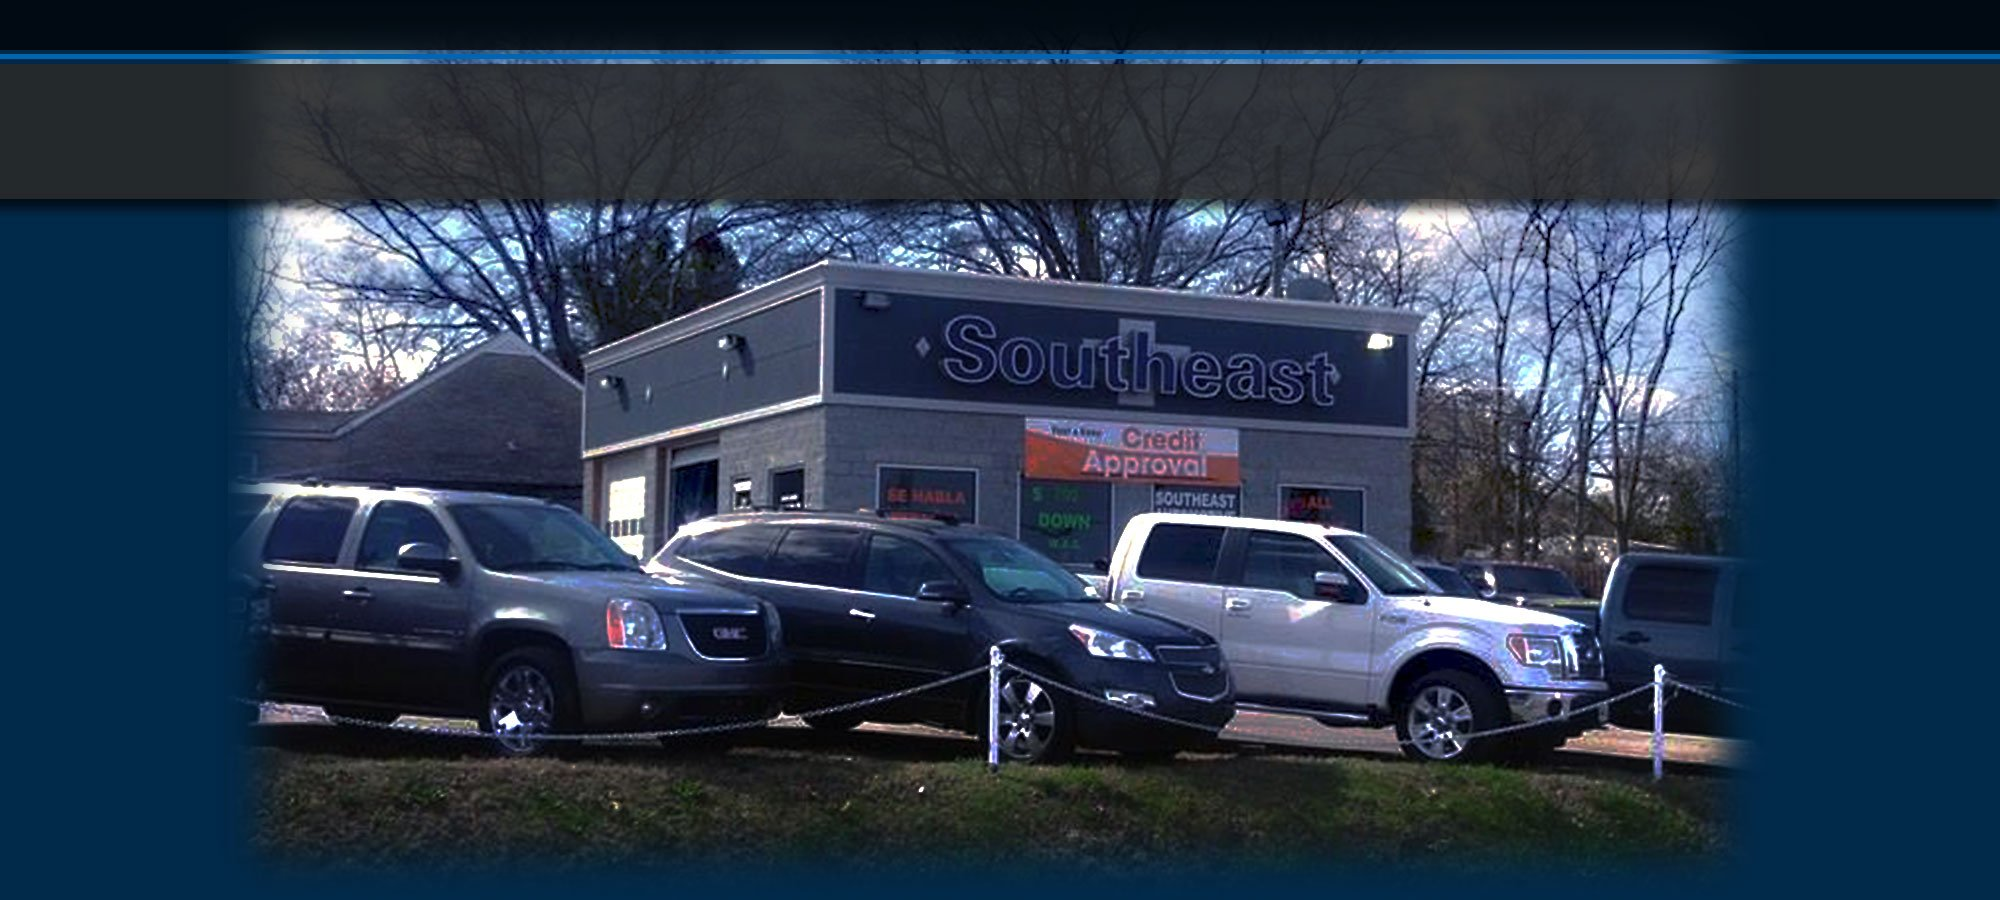 For years southeast automotive located in nashville tennessee has been your premier automotive dealership offering the best selection of used cars